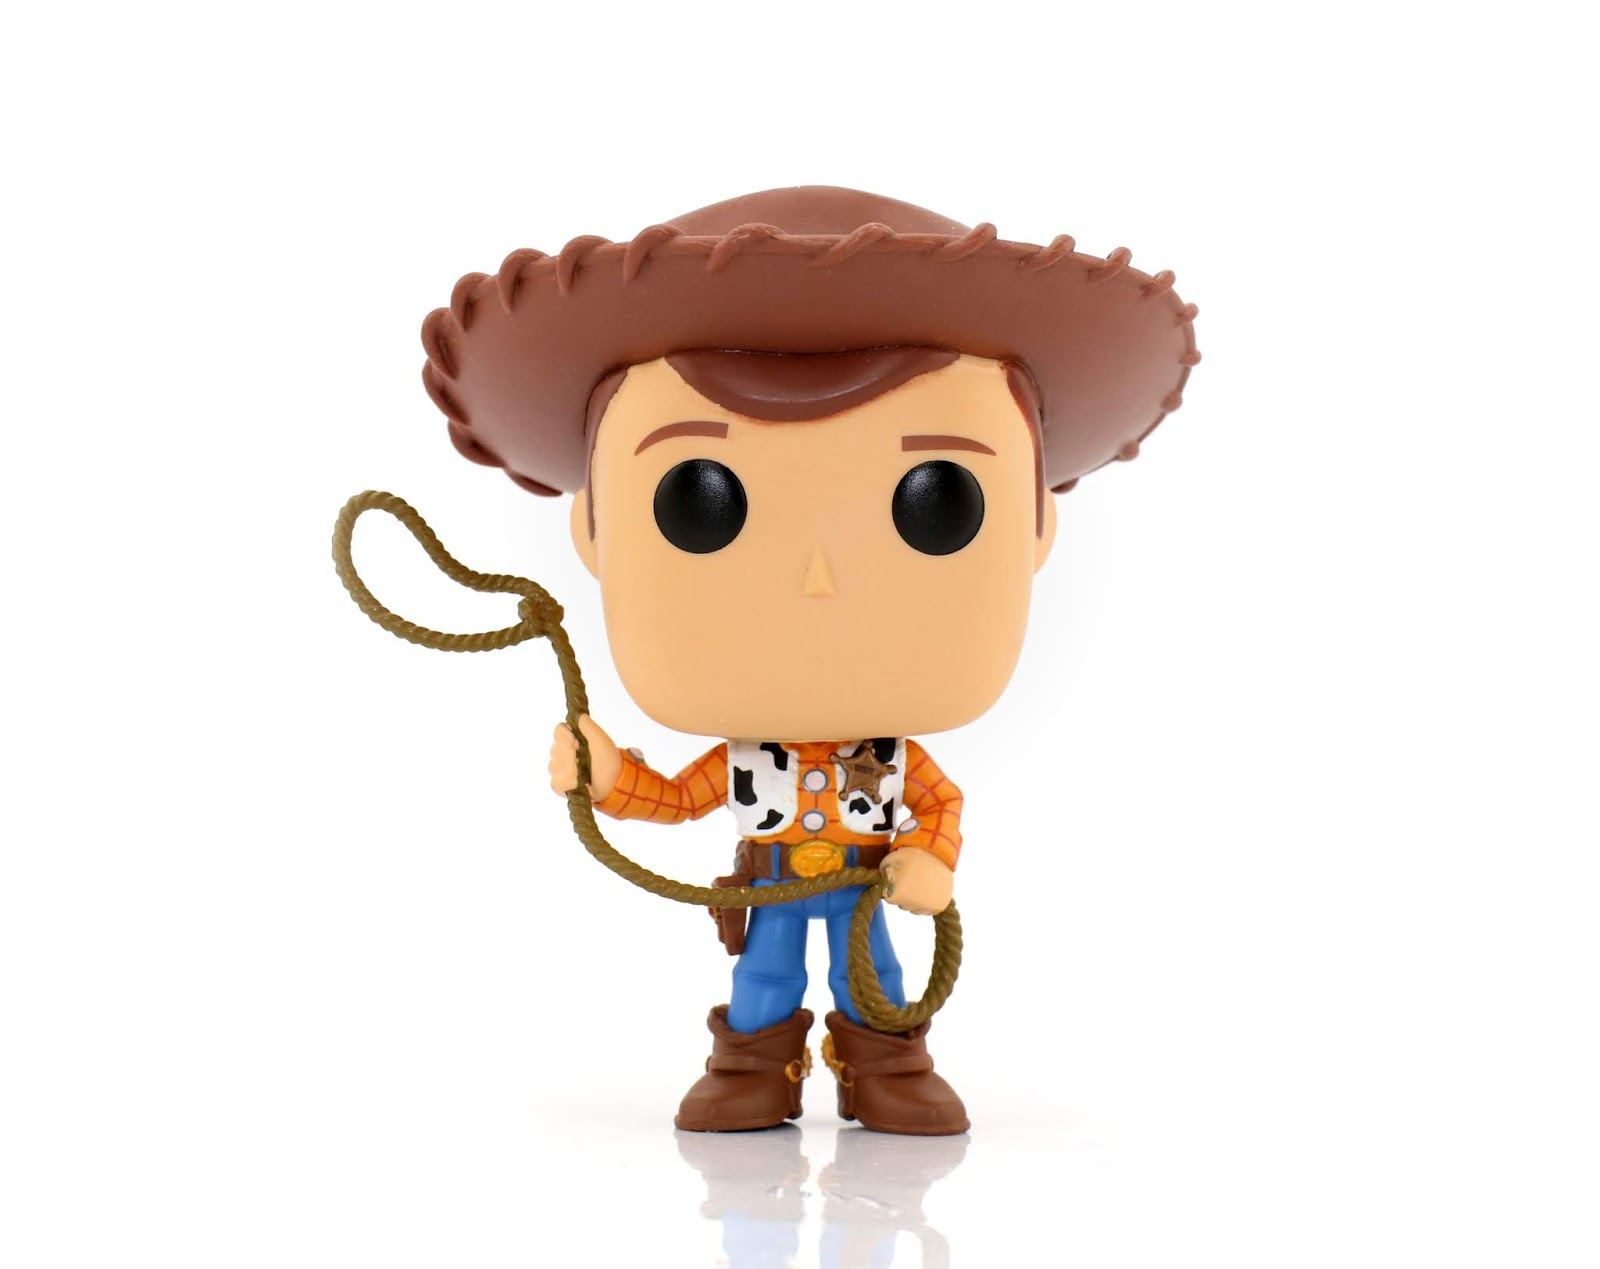 toy story 4 funko pop collection woody